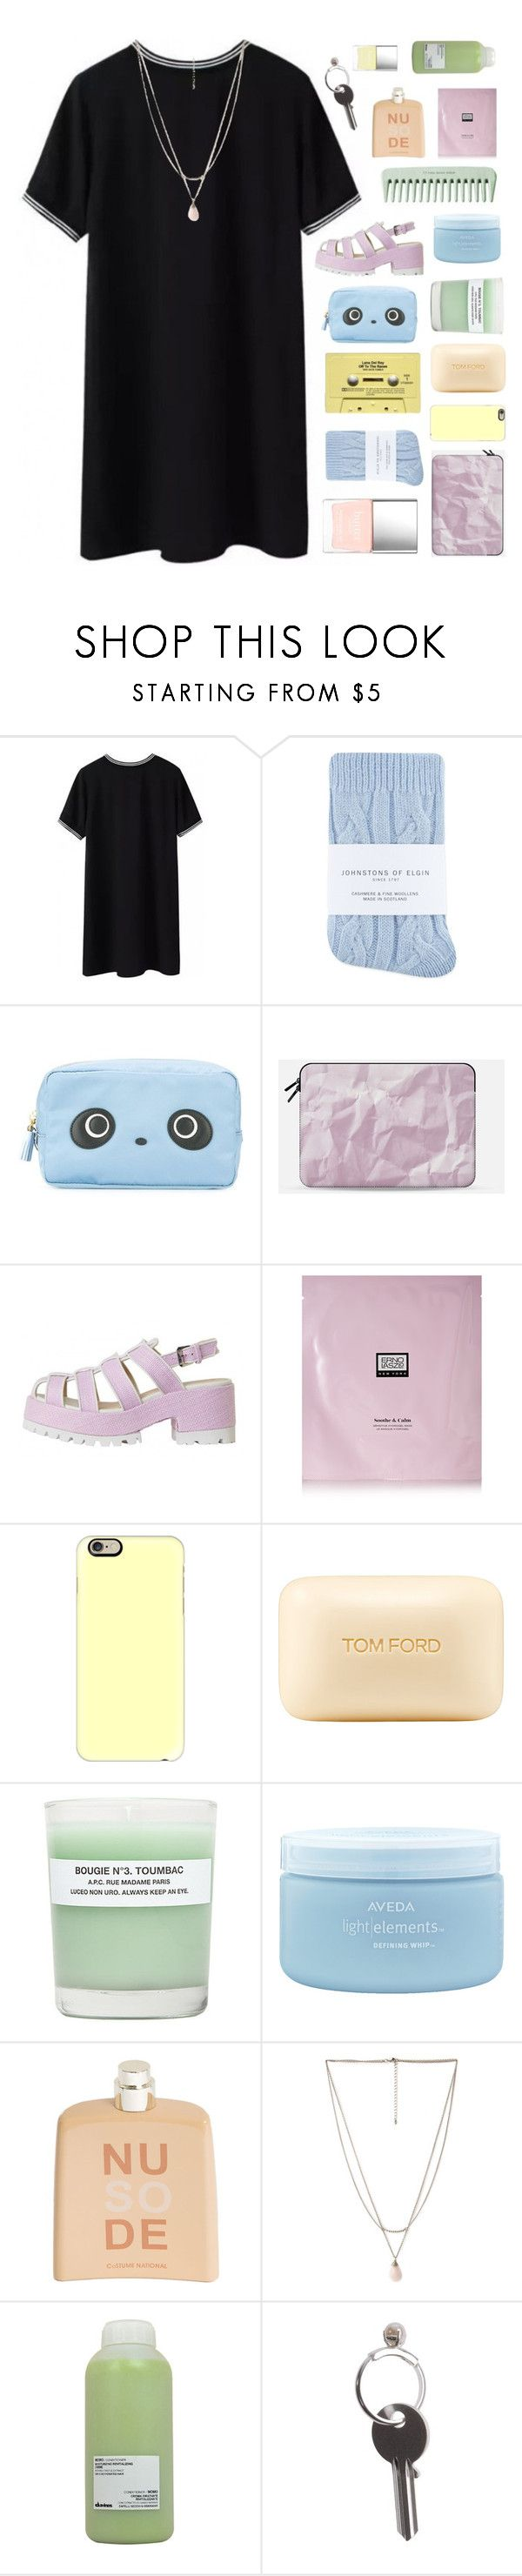 """""""I PROMISED MYSELF I WOULDN'T LET YOU COMPLETE ME"""" by w-anderess ❤ liked on Polyvore featuring Butter London, Johnstons, Anya Hindmarch, Casetify, Erno Laszlo, Tom Ford, A.P.C., Aveda, COSTUME NATIONAL and Forever 21"""